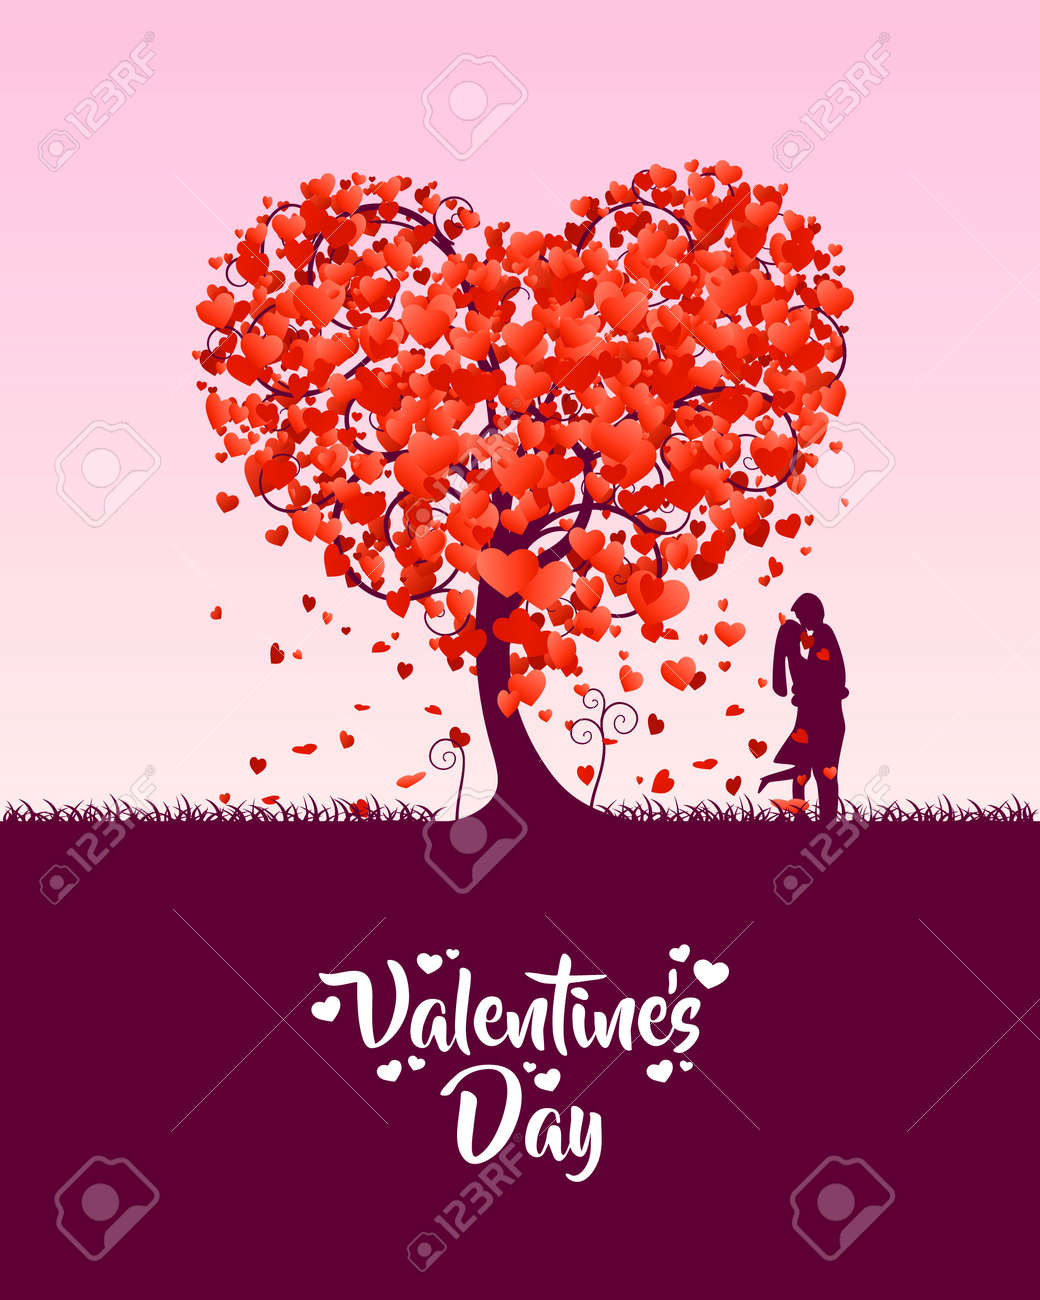 Happy Valentines Day Heart Tree Love Cover On A White Background Stock Photo Picture And Royalty Free Image Image 109487429